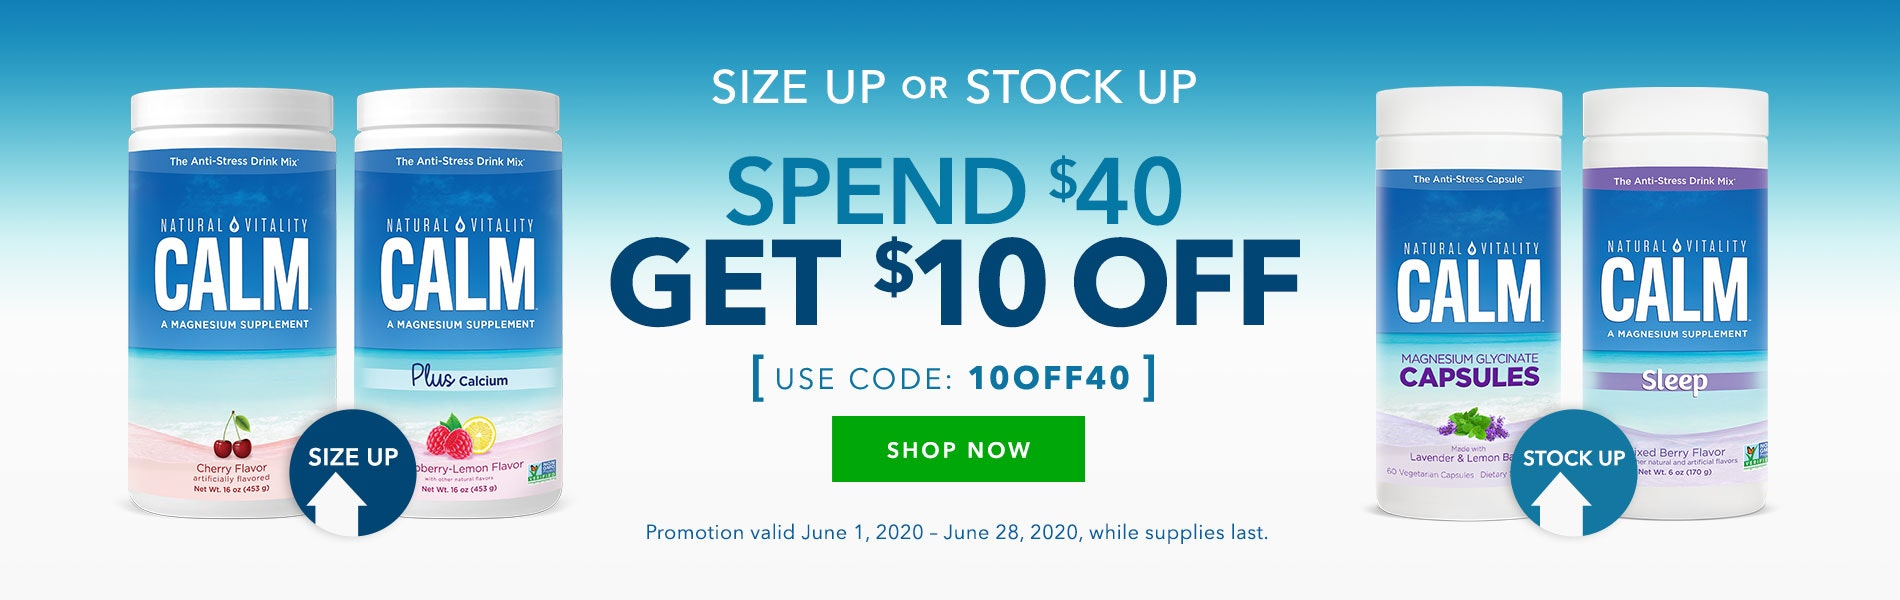 Size Up or Stock Up! Spend $40 Get $10 OFF. Use Code: 10OFF40. Shop Now!